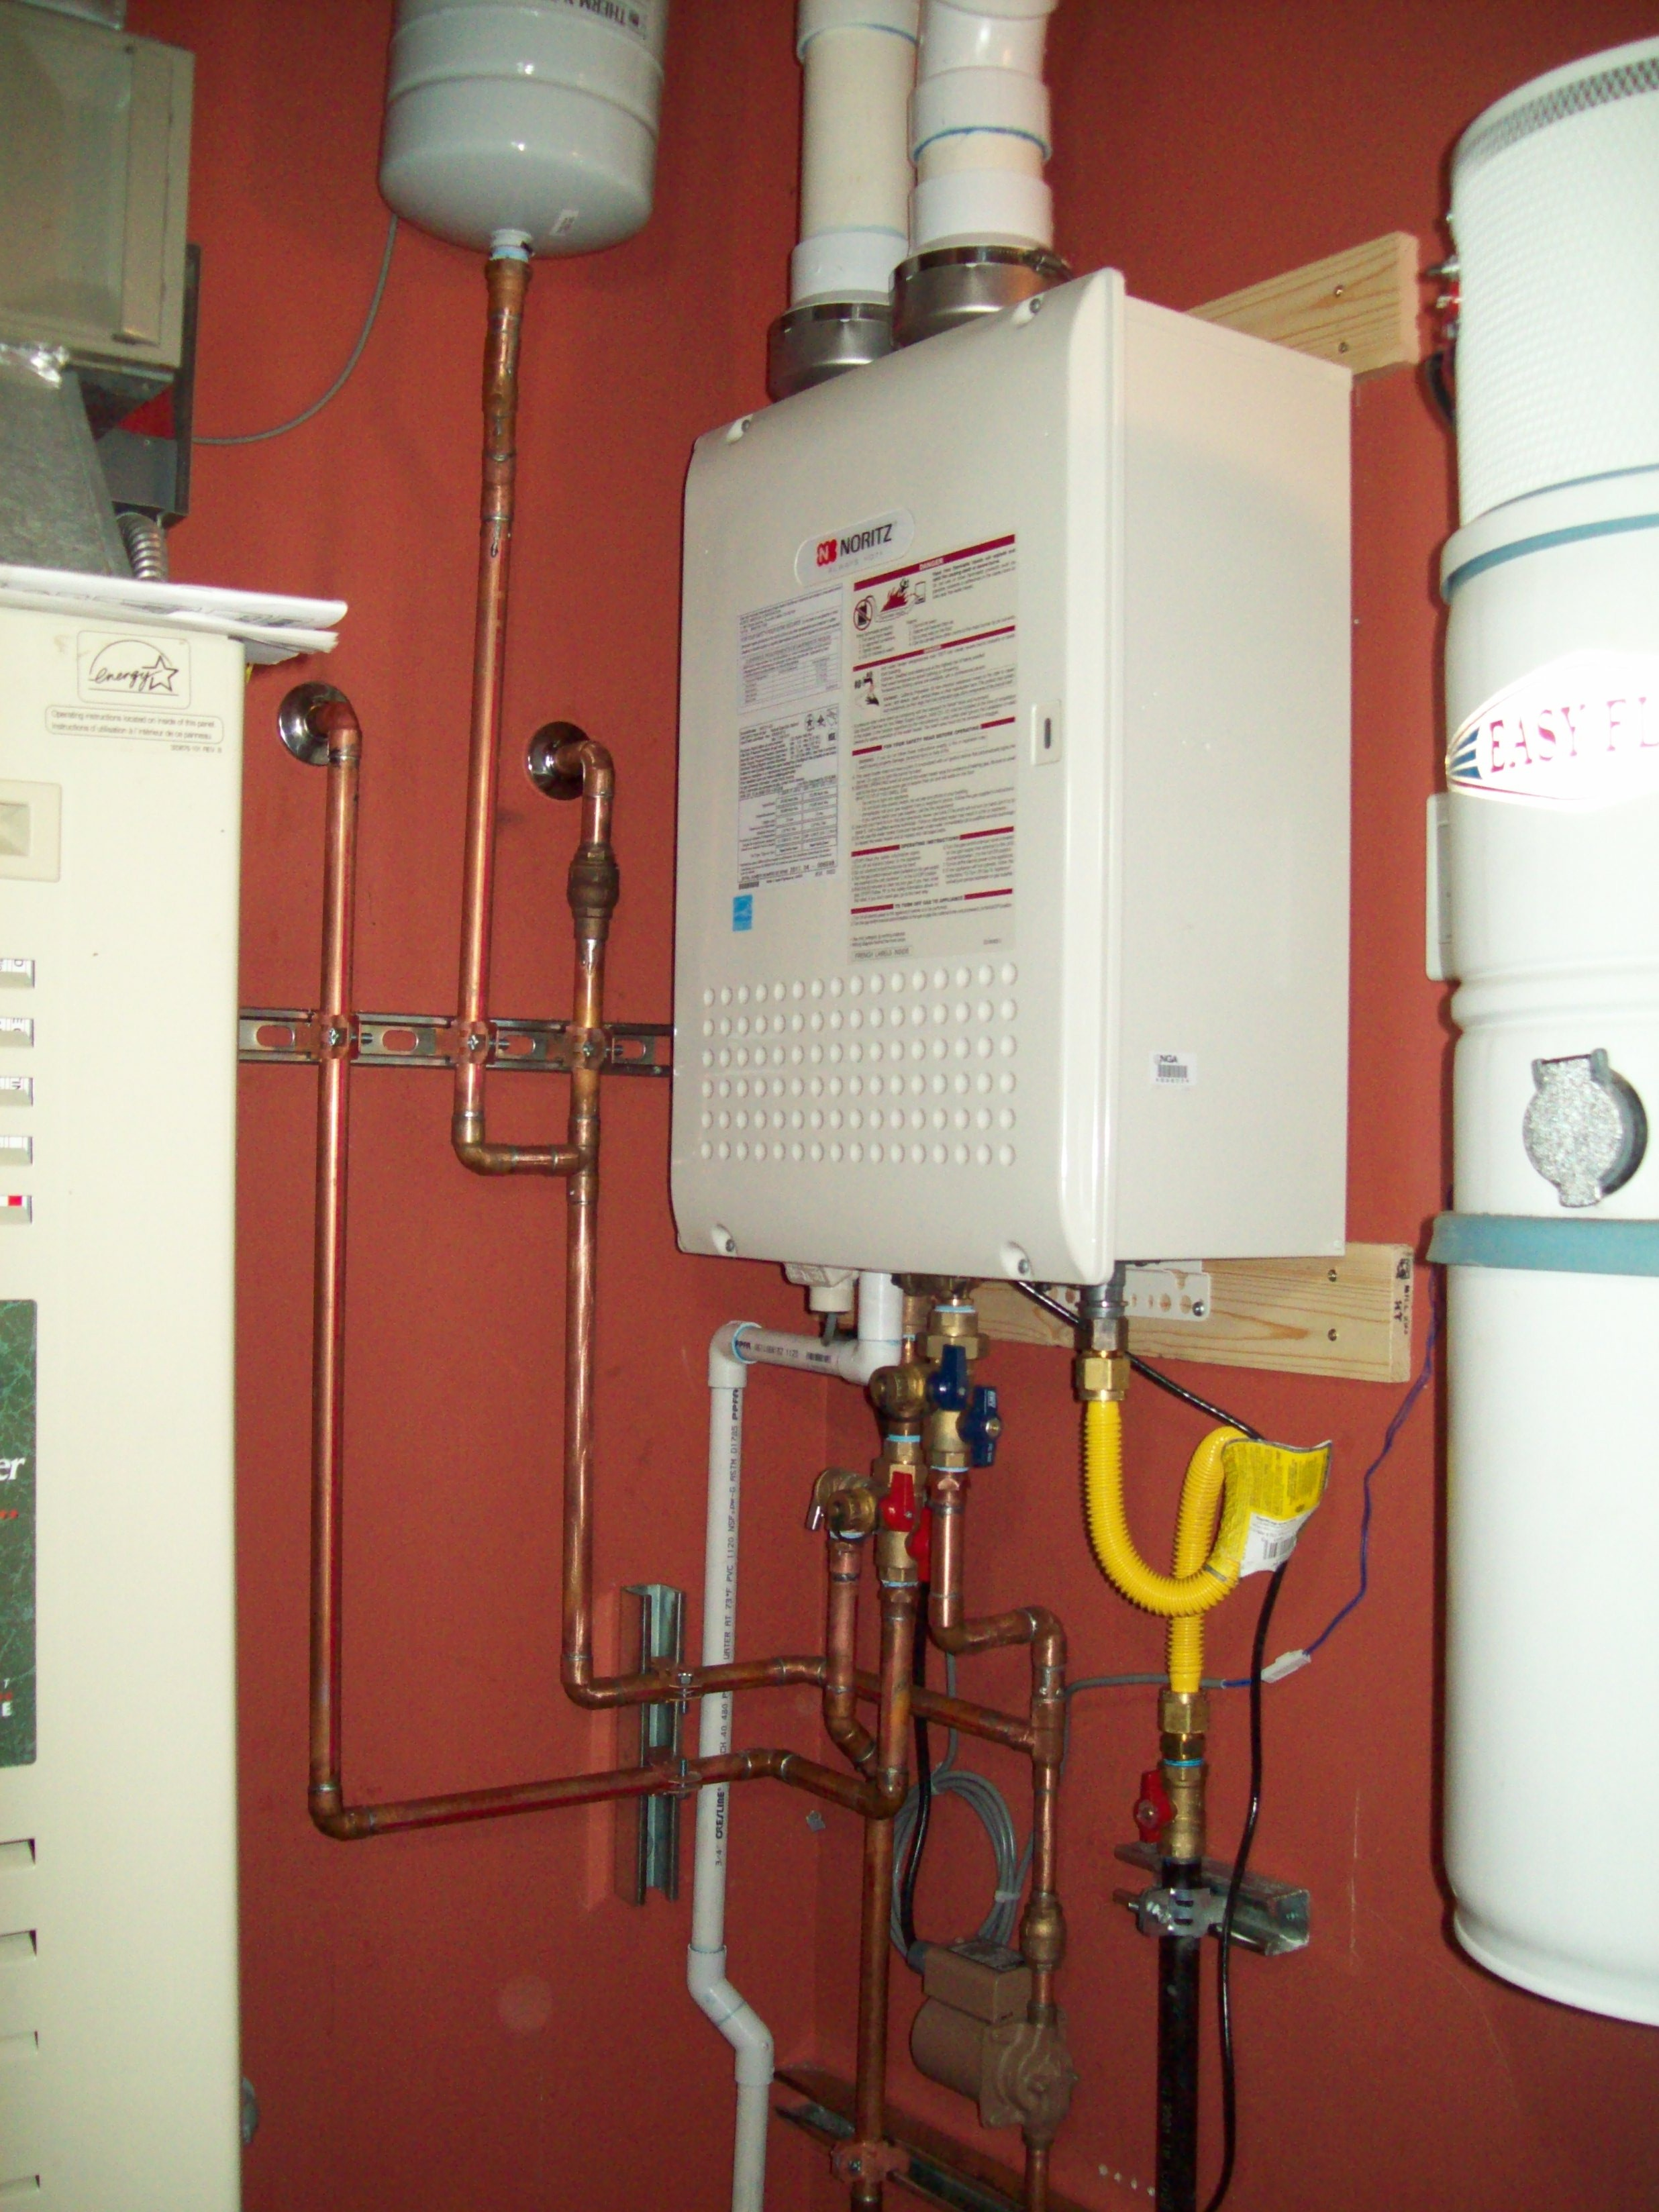 Noritz Nrc 111 Dv Tankless Water Heater Install With